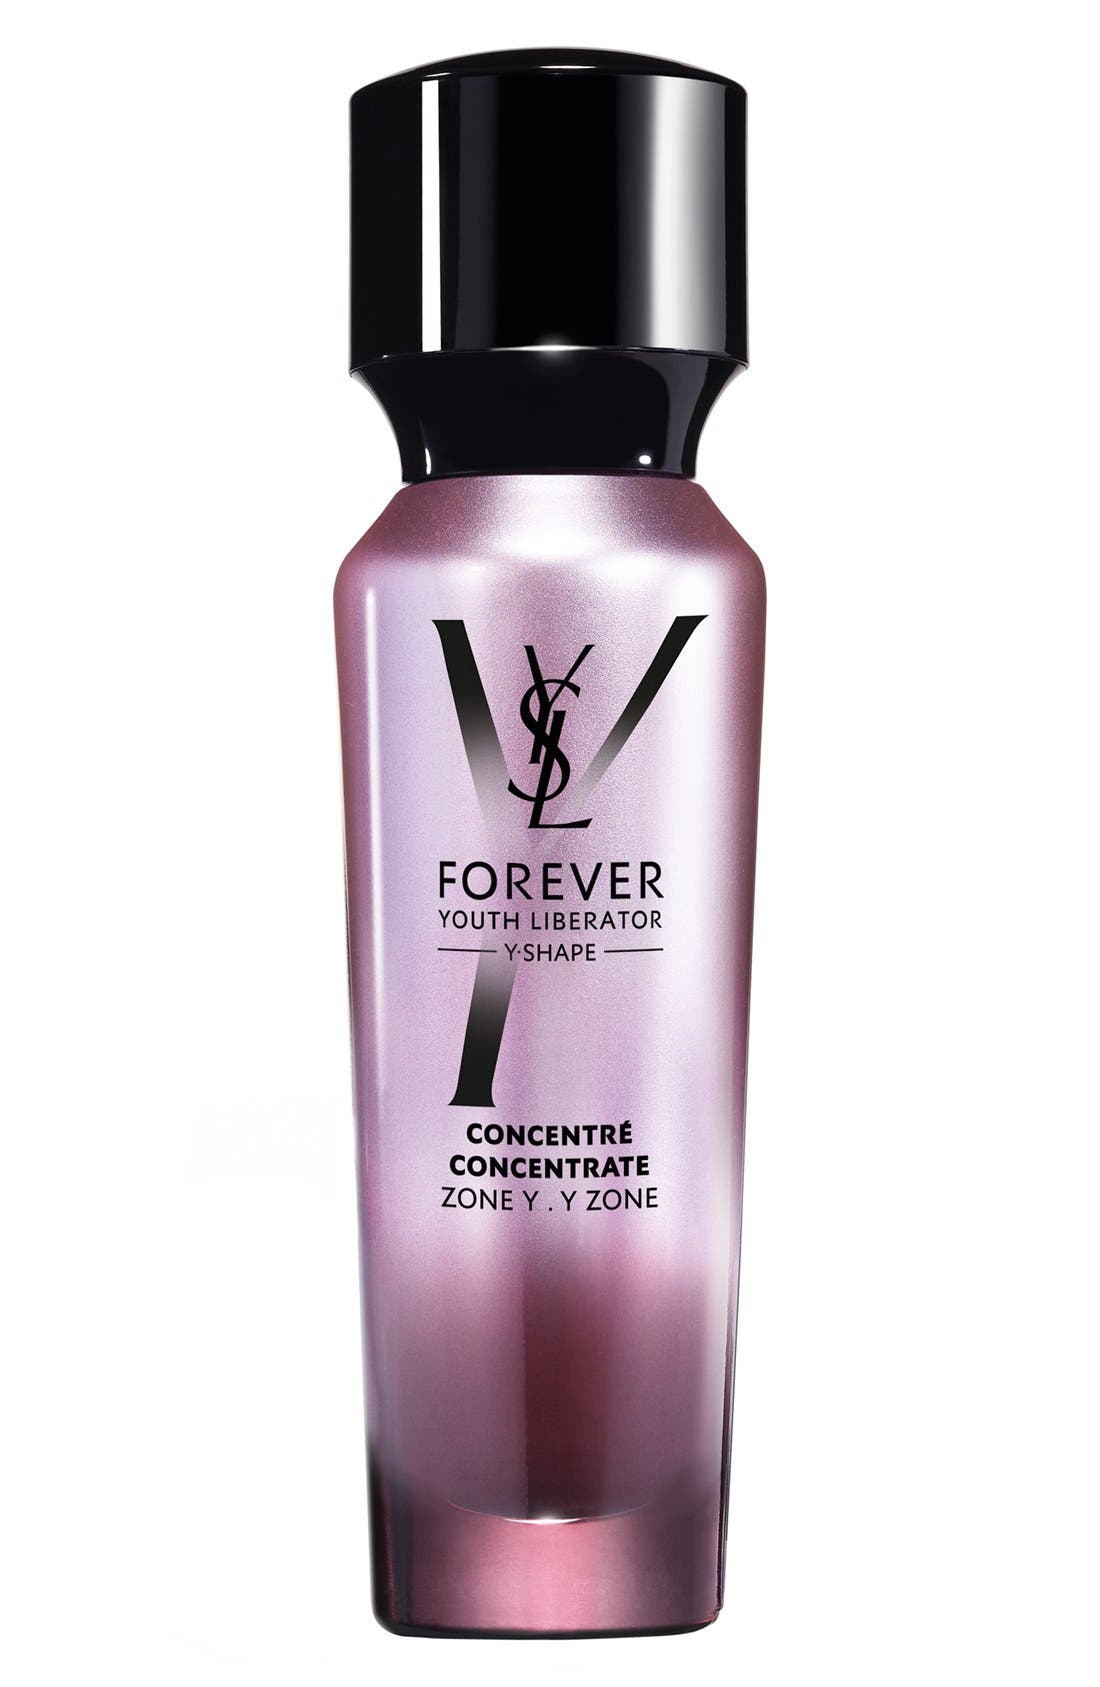 Forever Youth Liberator Y-Shape Concentrate,                             Main thumbnail 1, color,                             NONE